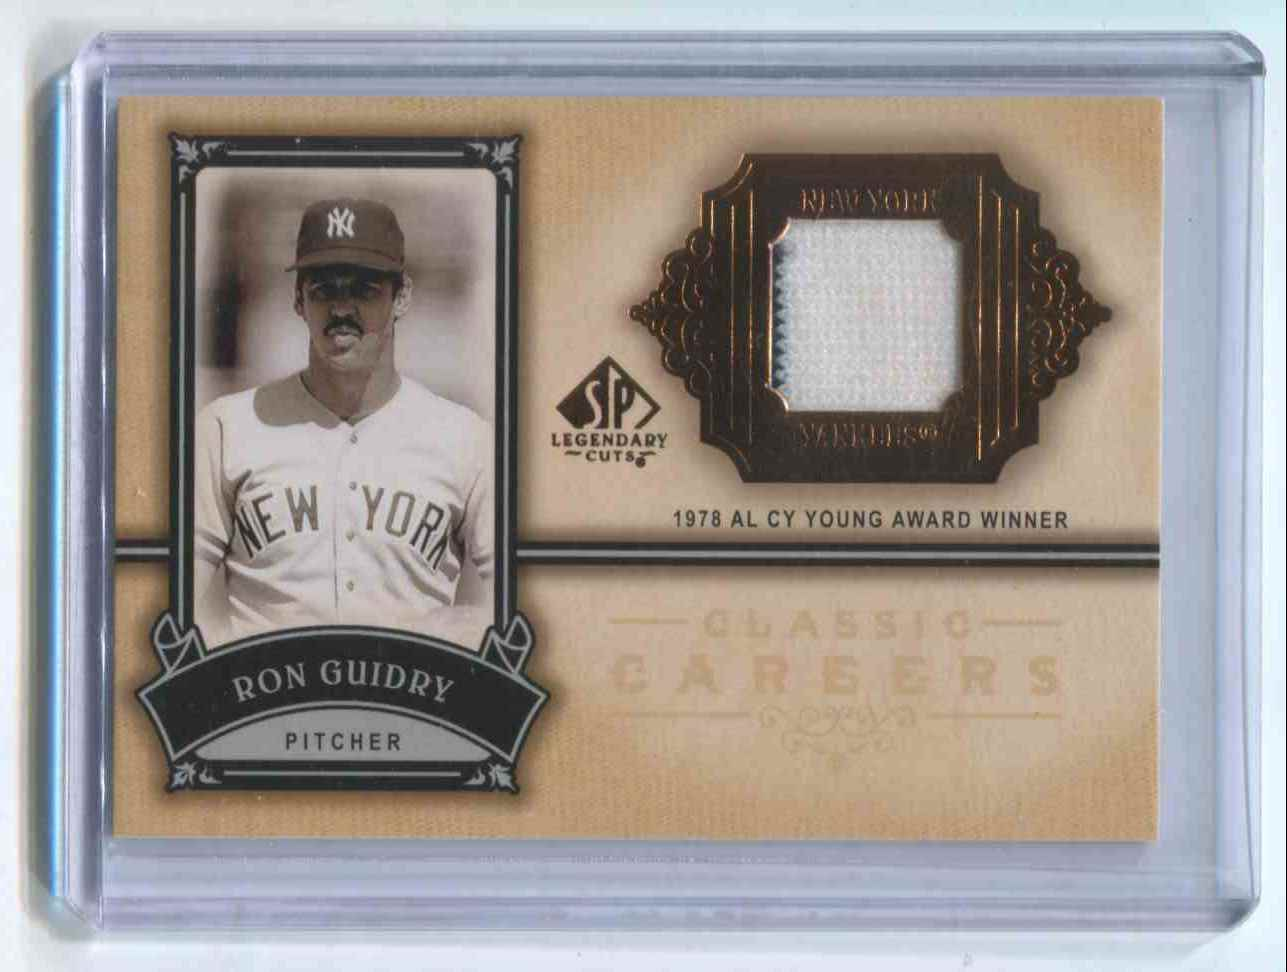 2005 SP Authentic Legendary Cuts Jersey Ron Guidry card front image 05da7eefcdd